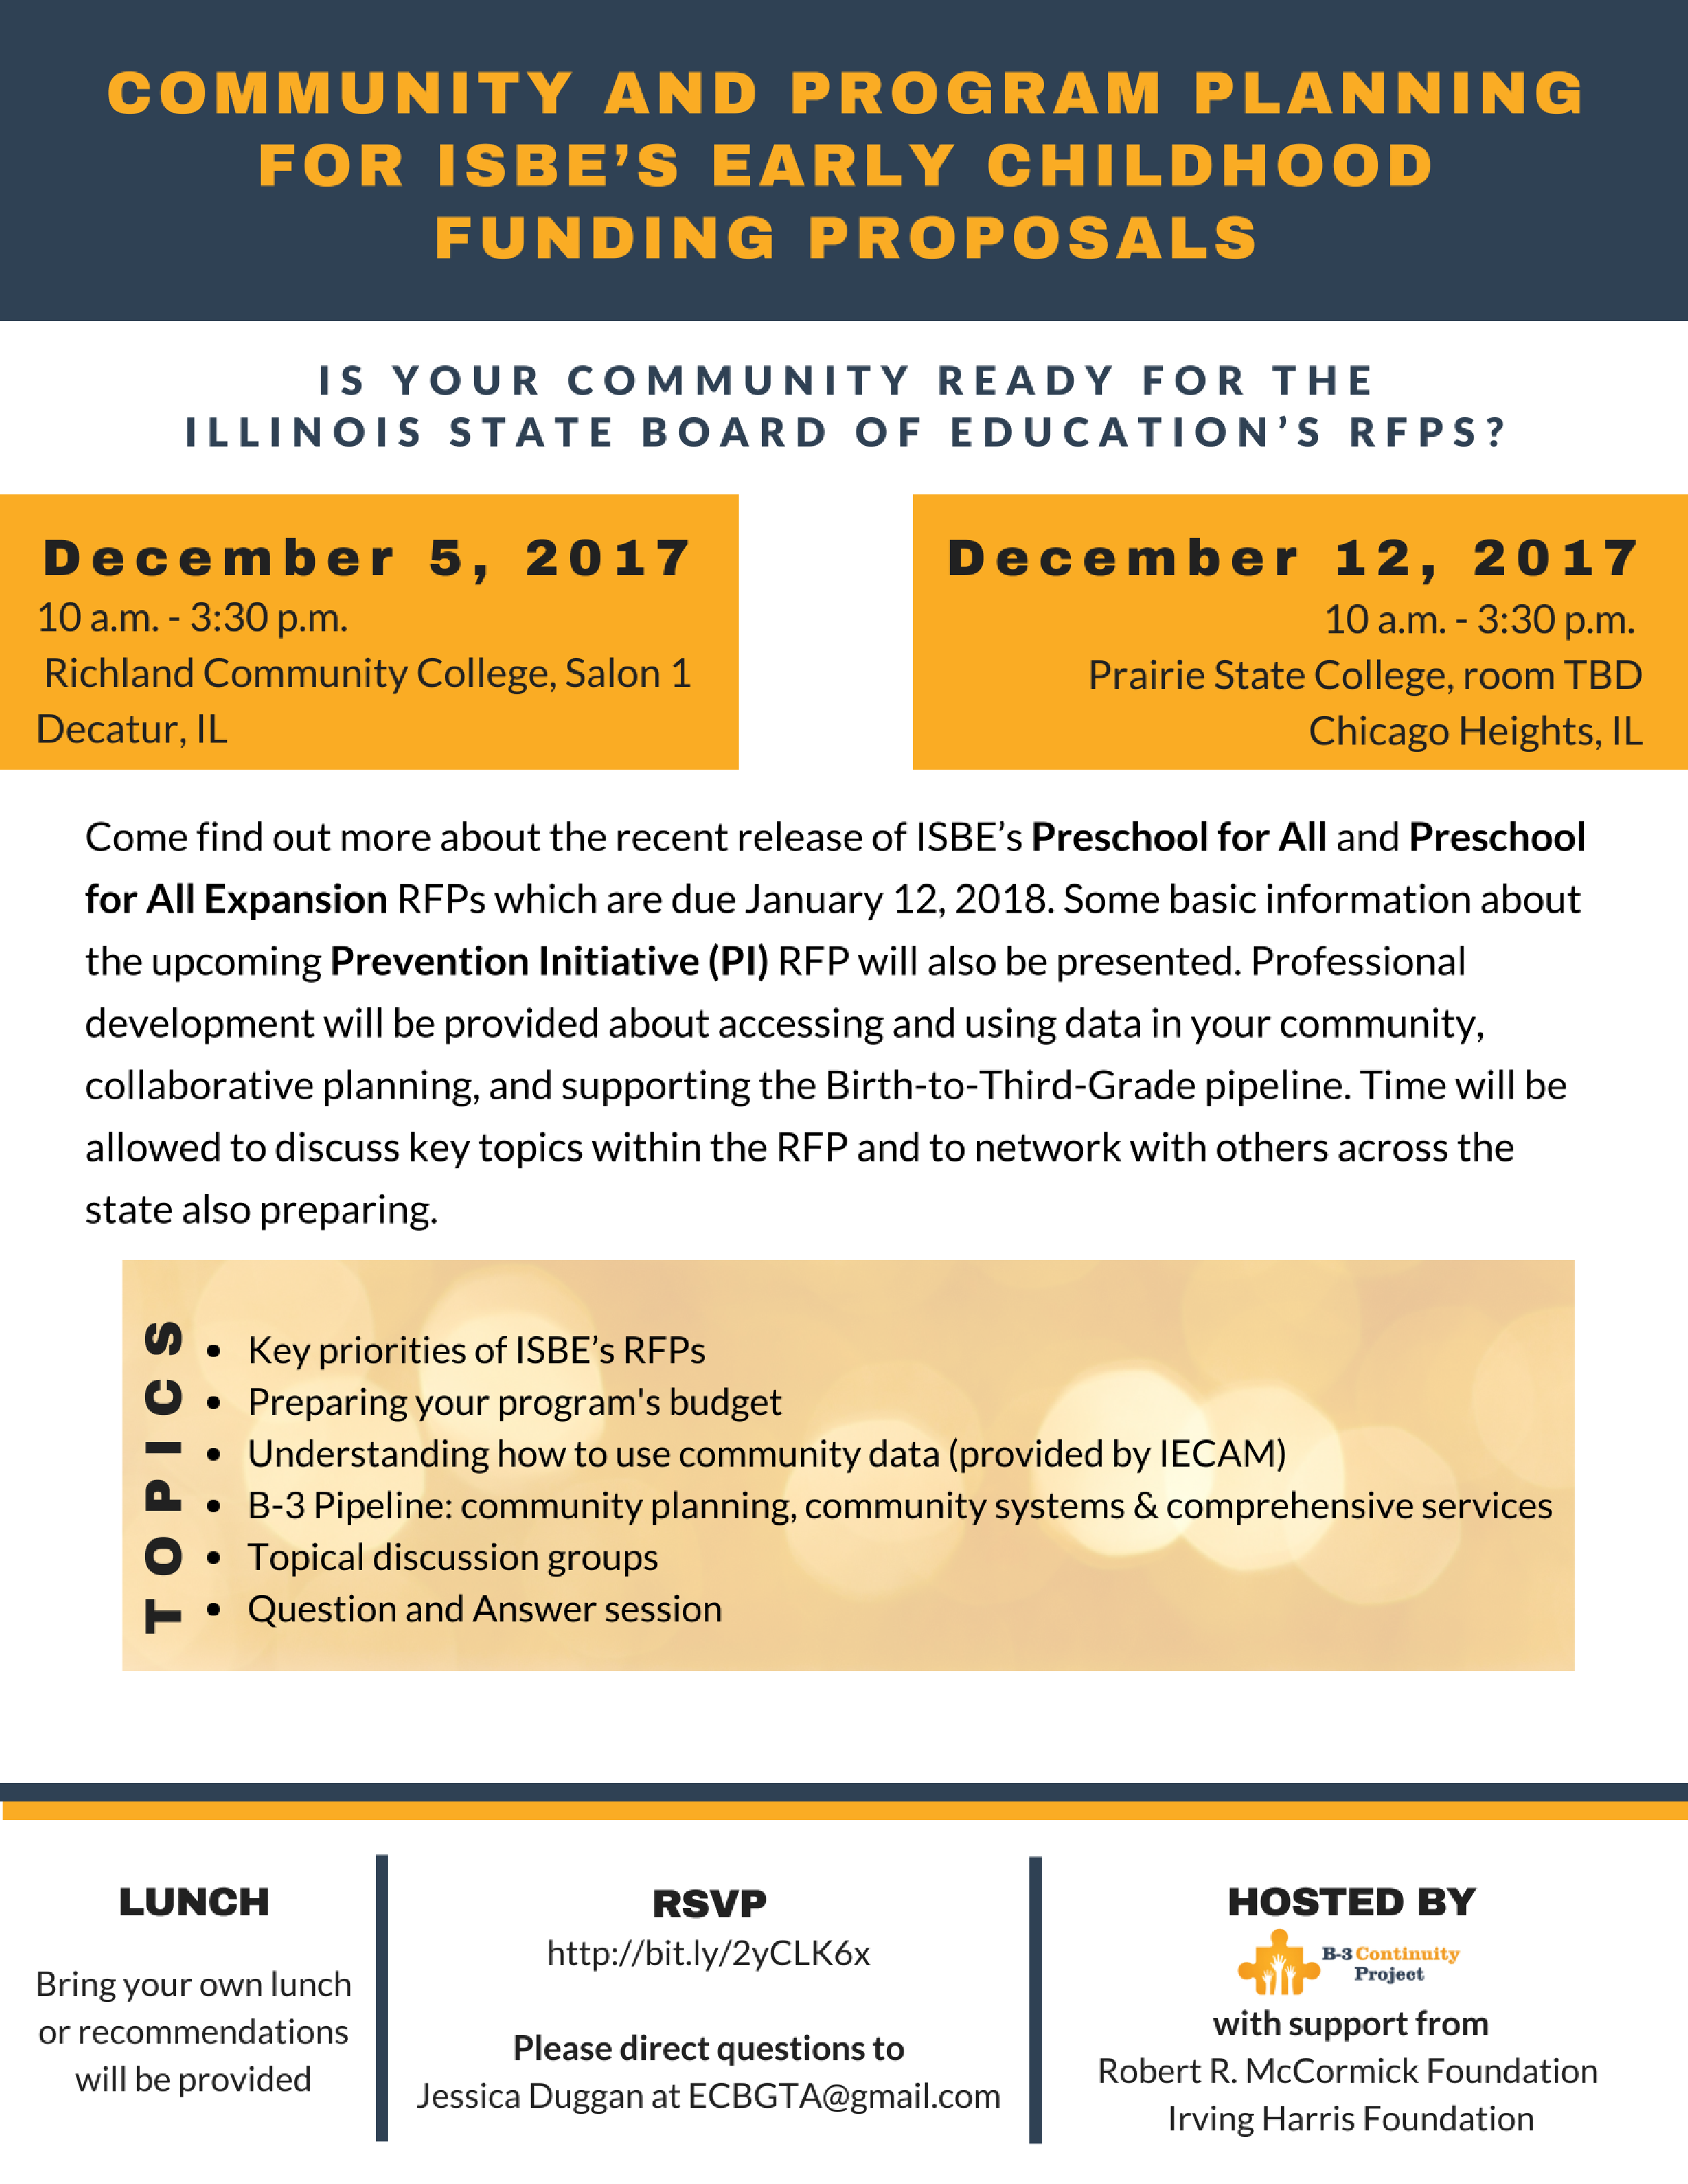 Community and Program Planning for ISBE's Early Childhood Funding Proposals Workshops flyer